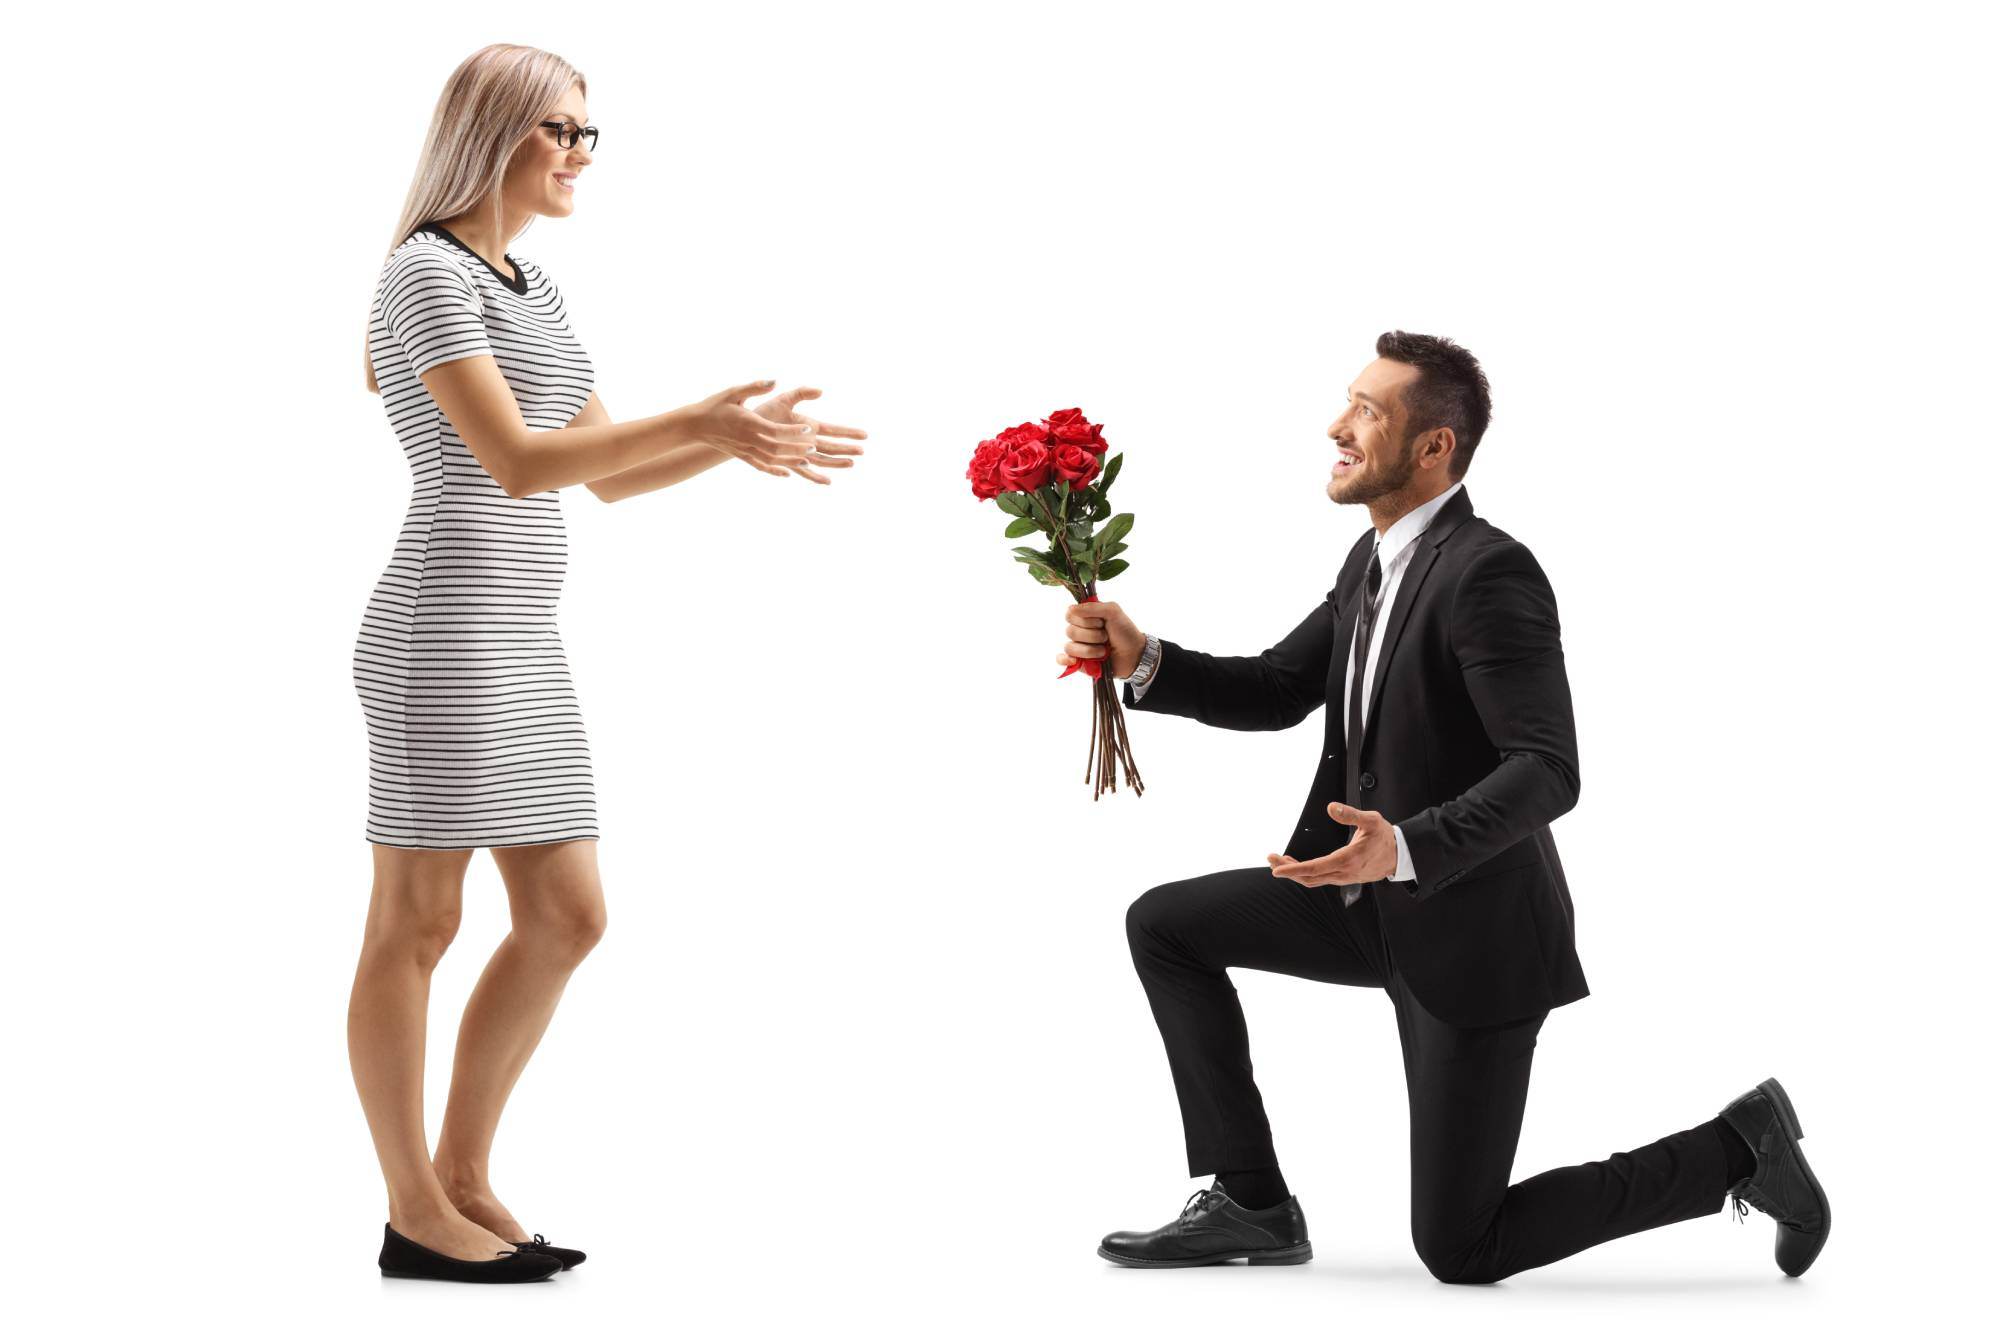 a beta male offers flowers to a woman